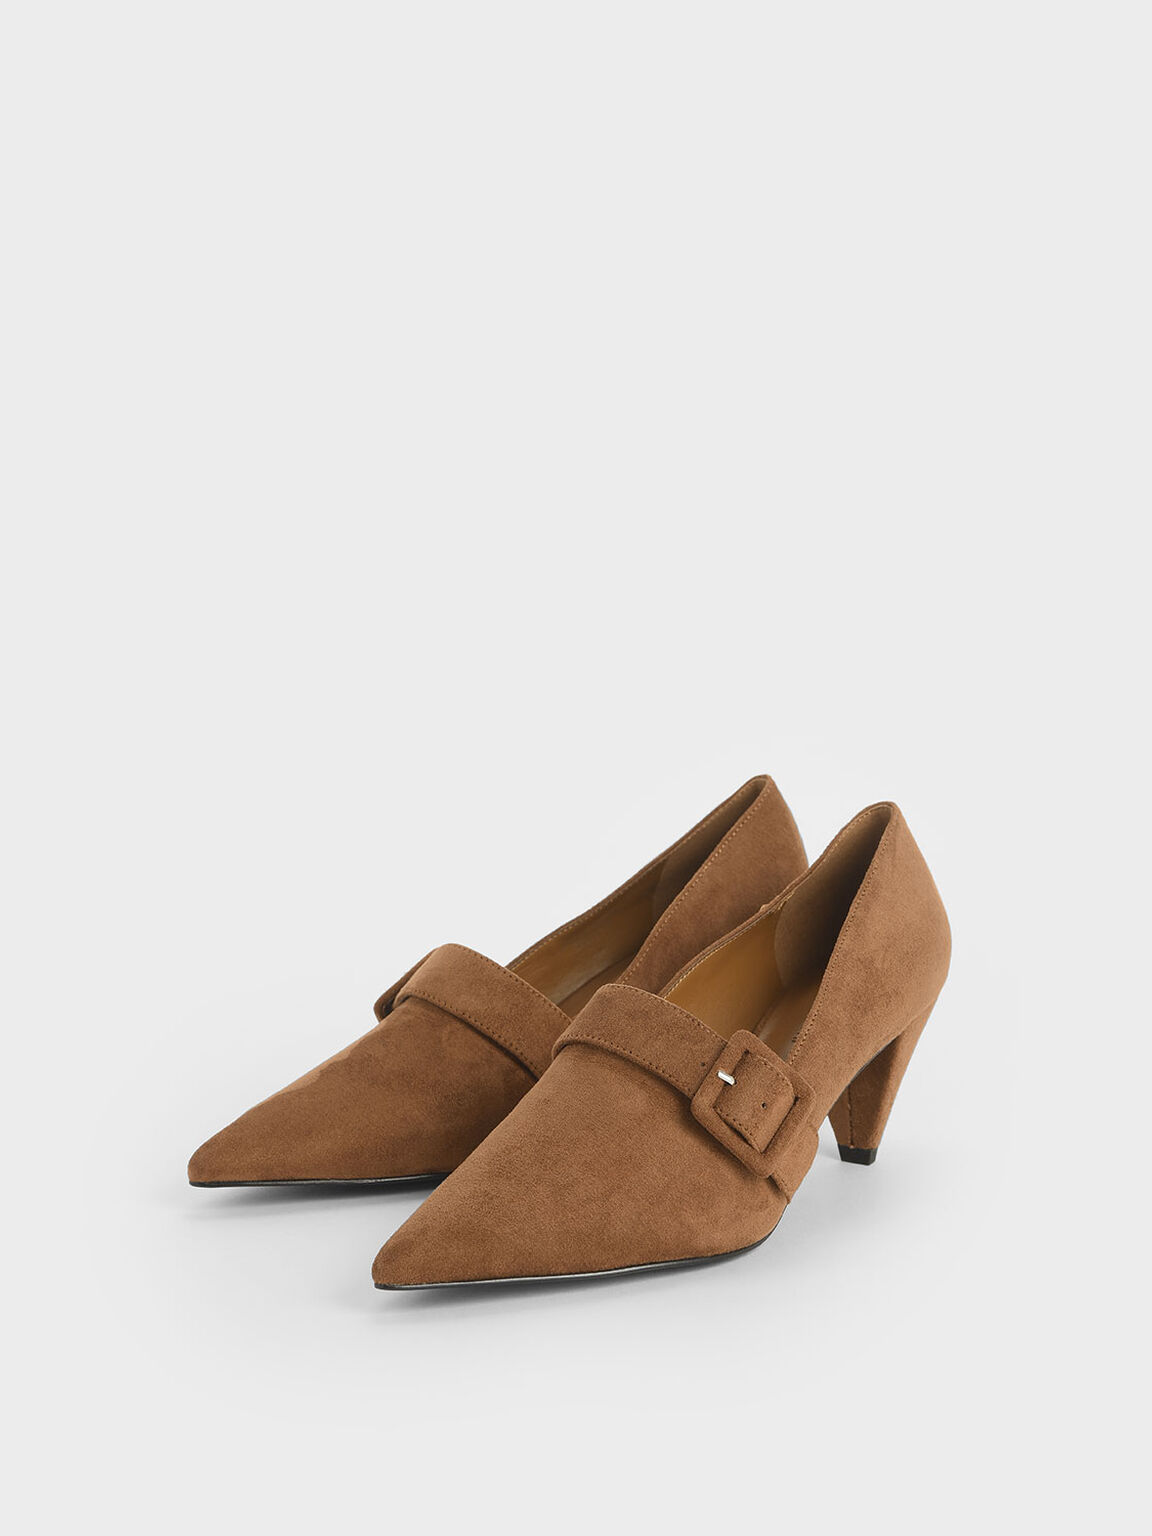 Textured Buckle Strap Cone Heel Pumps, Mustard, hi-res